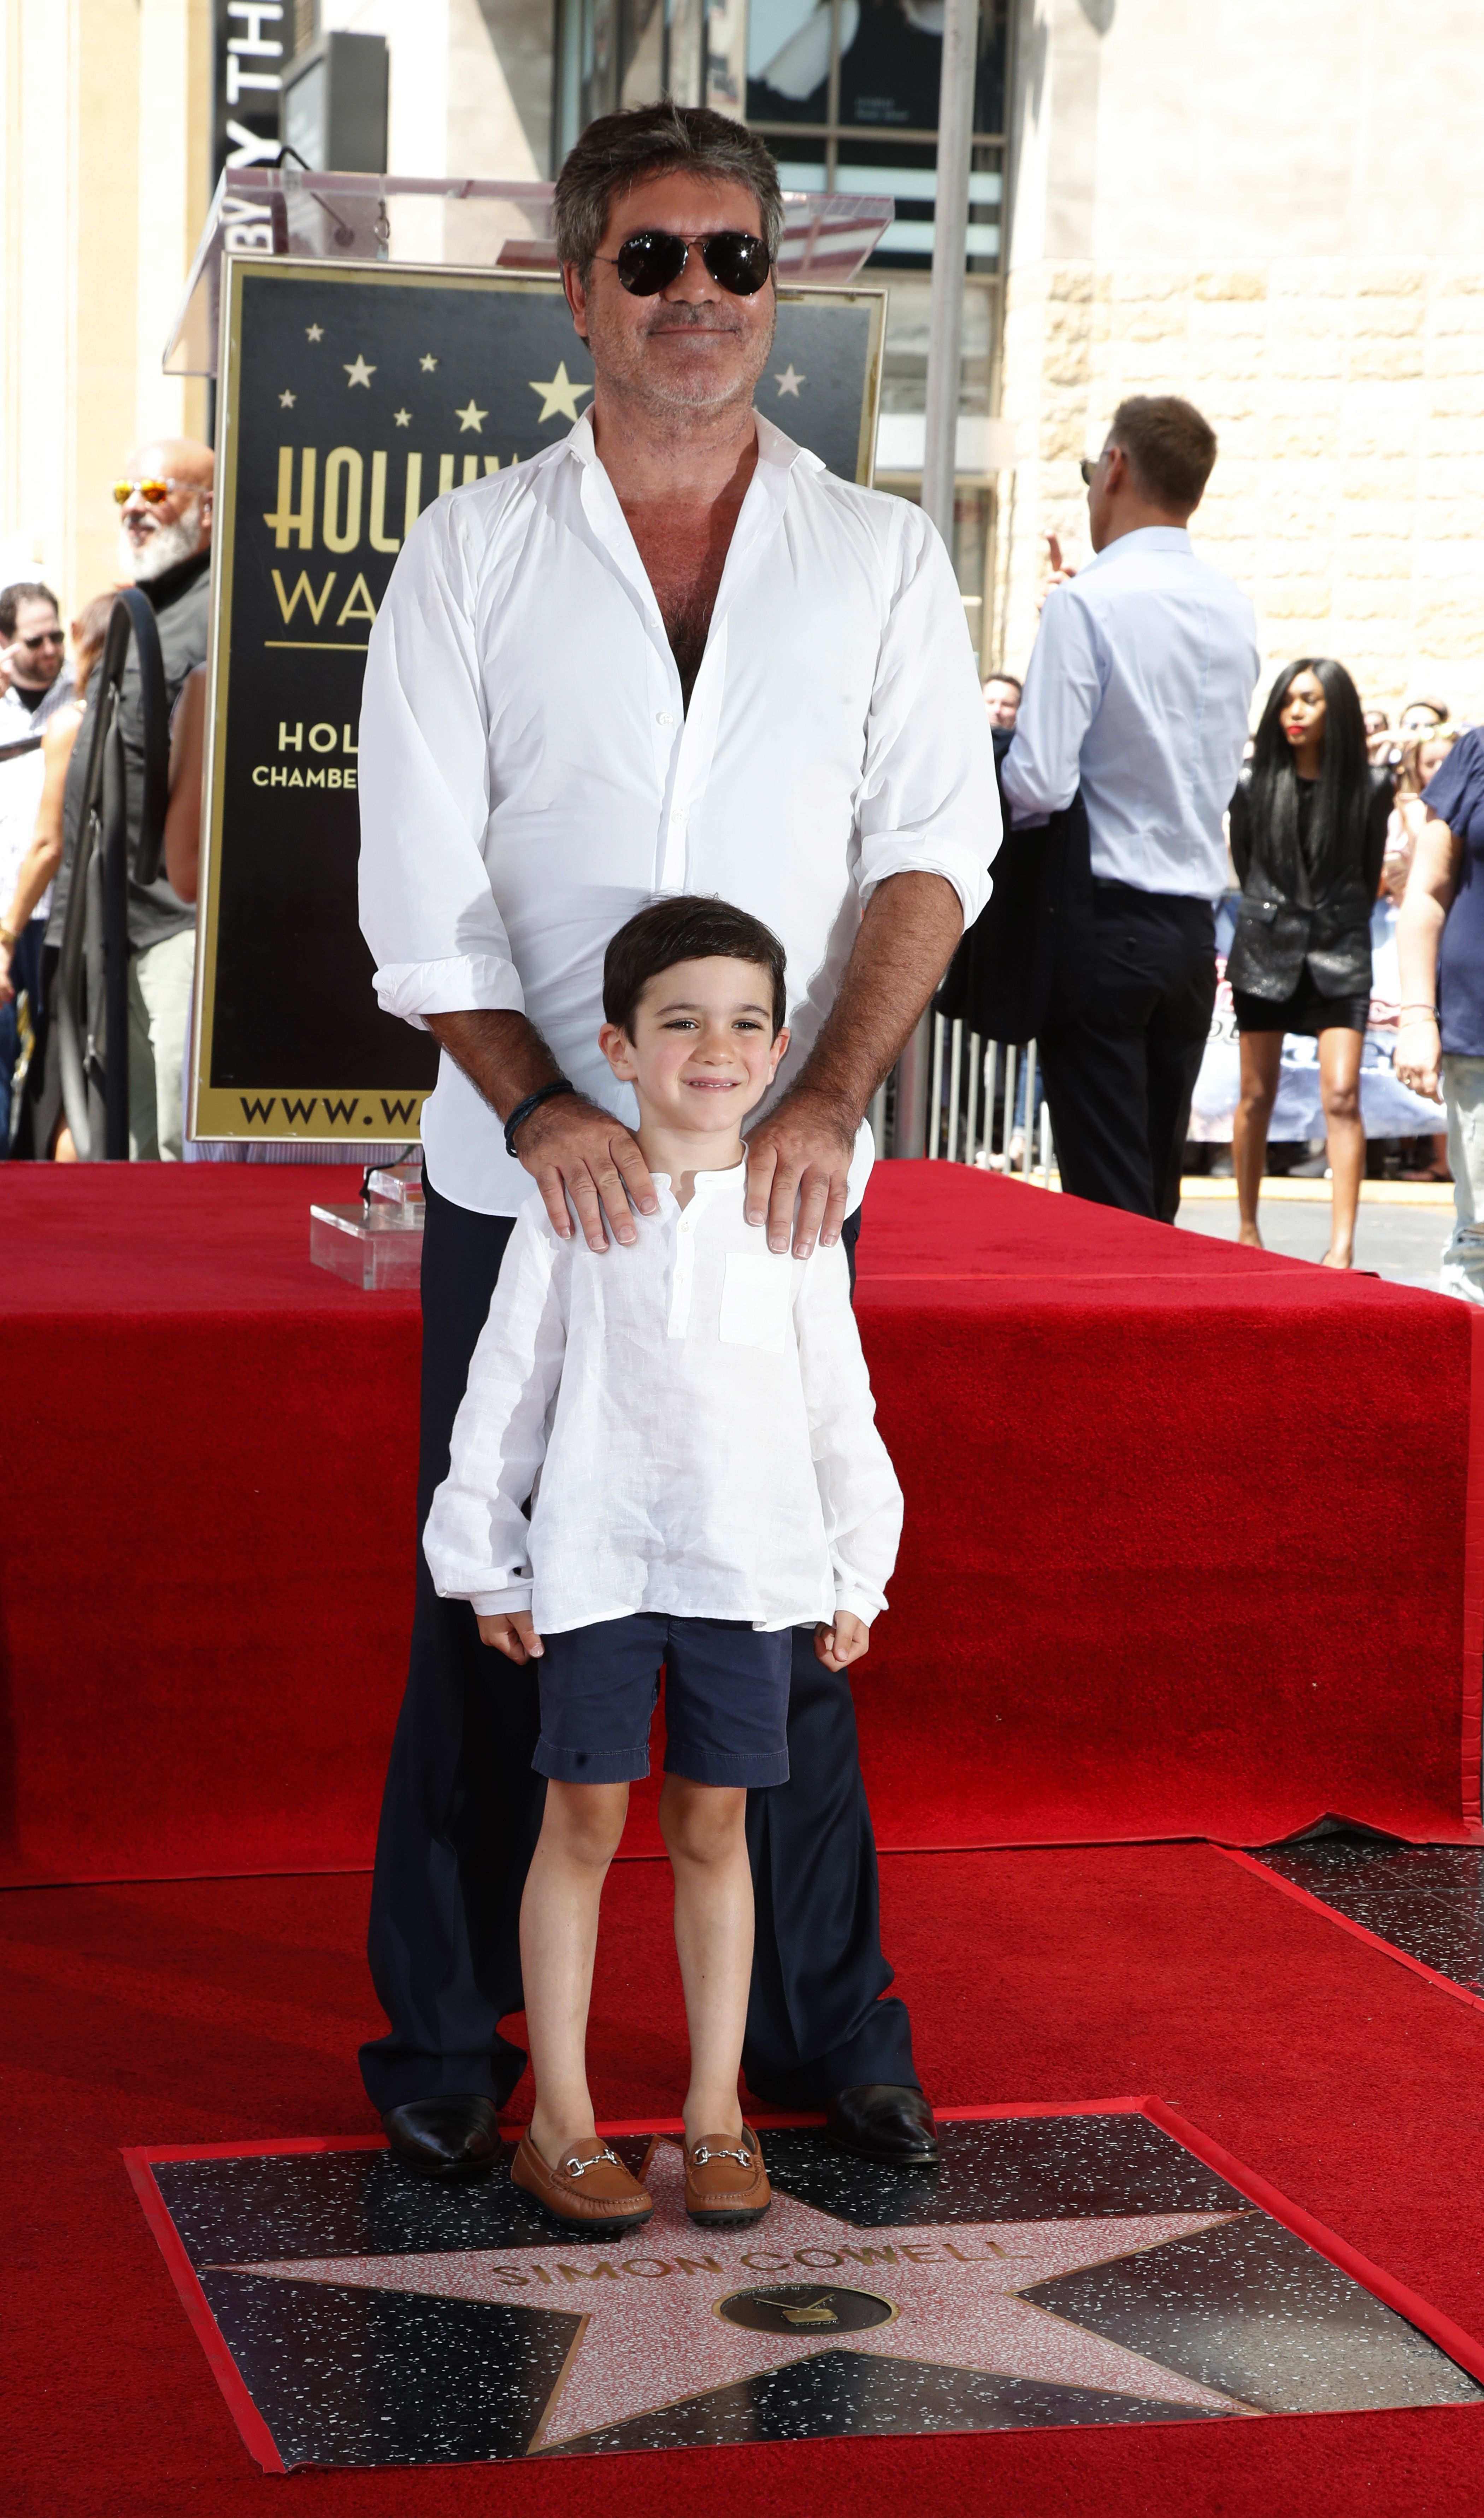 Simon Cowell and his son, Eric, attend his Hollywood Walk of Fame star ceremony on Aug. 22, 2018.